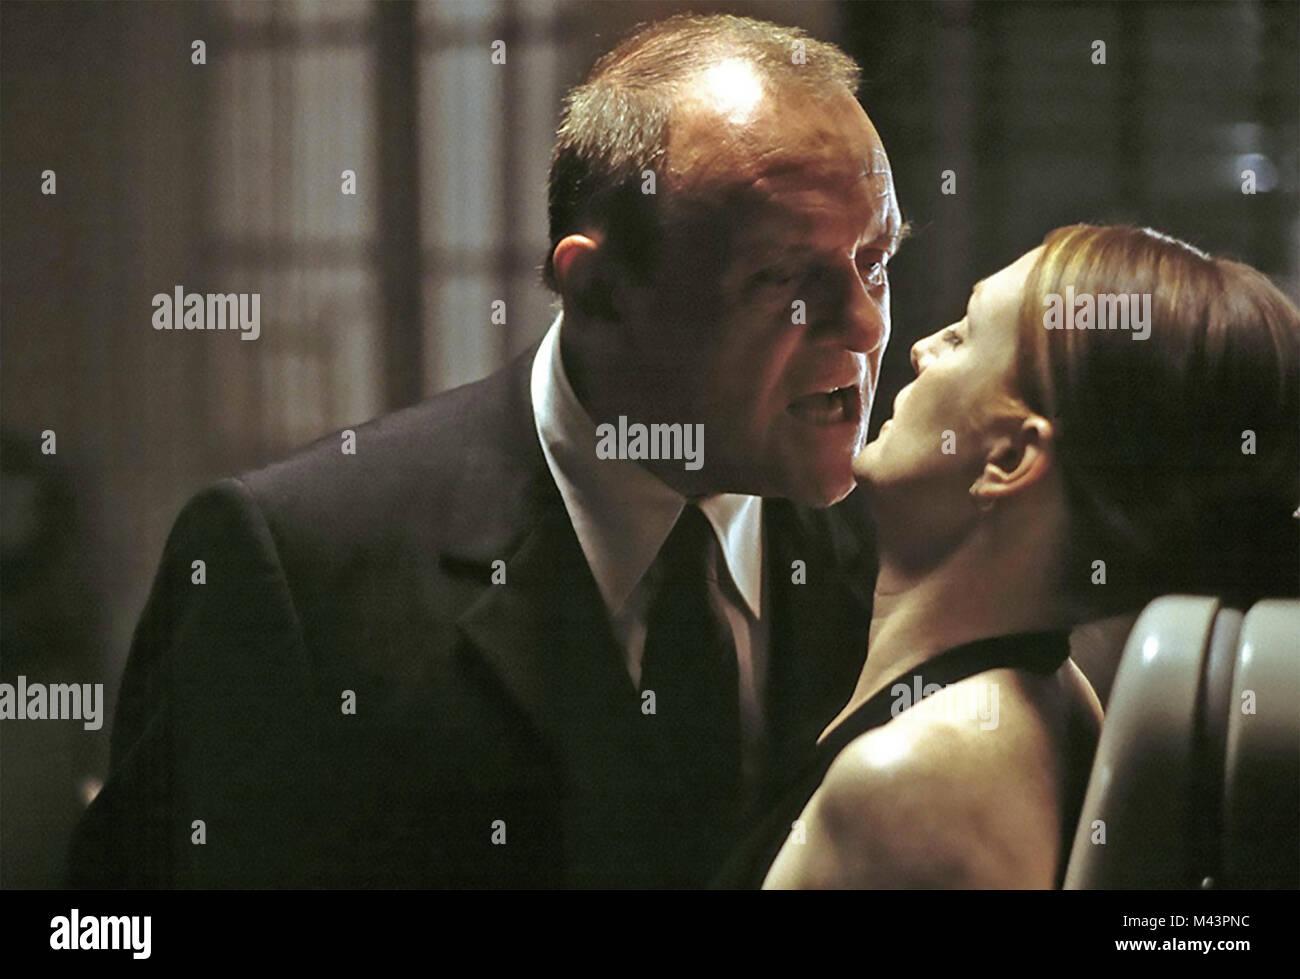 Hannibal 2001 Mgm Film With Julianne Moore And Anthony Hopkins Stock Photo Alamy